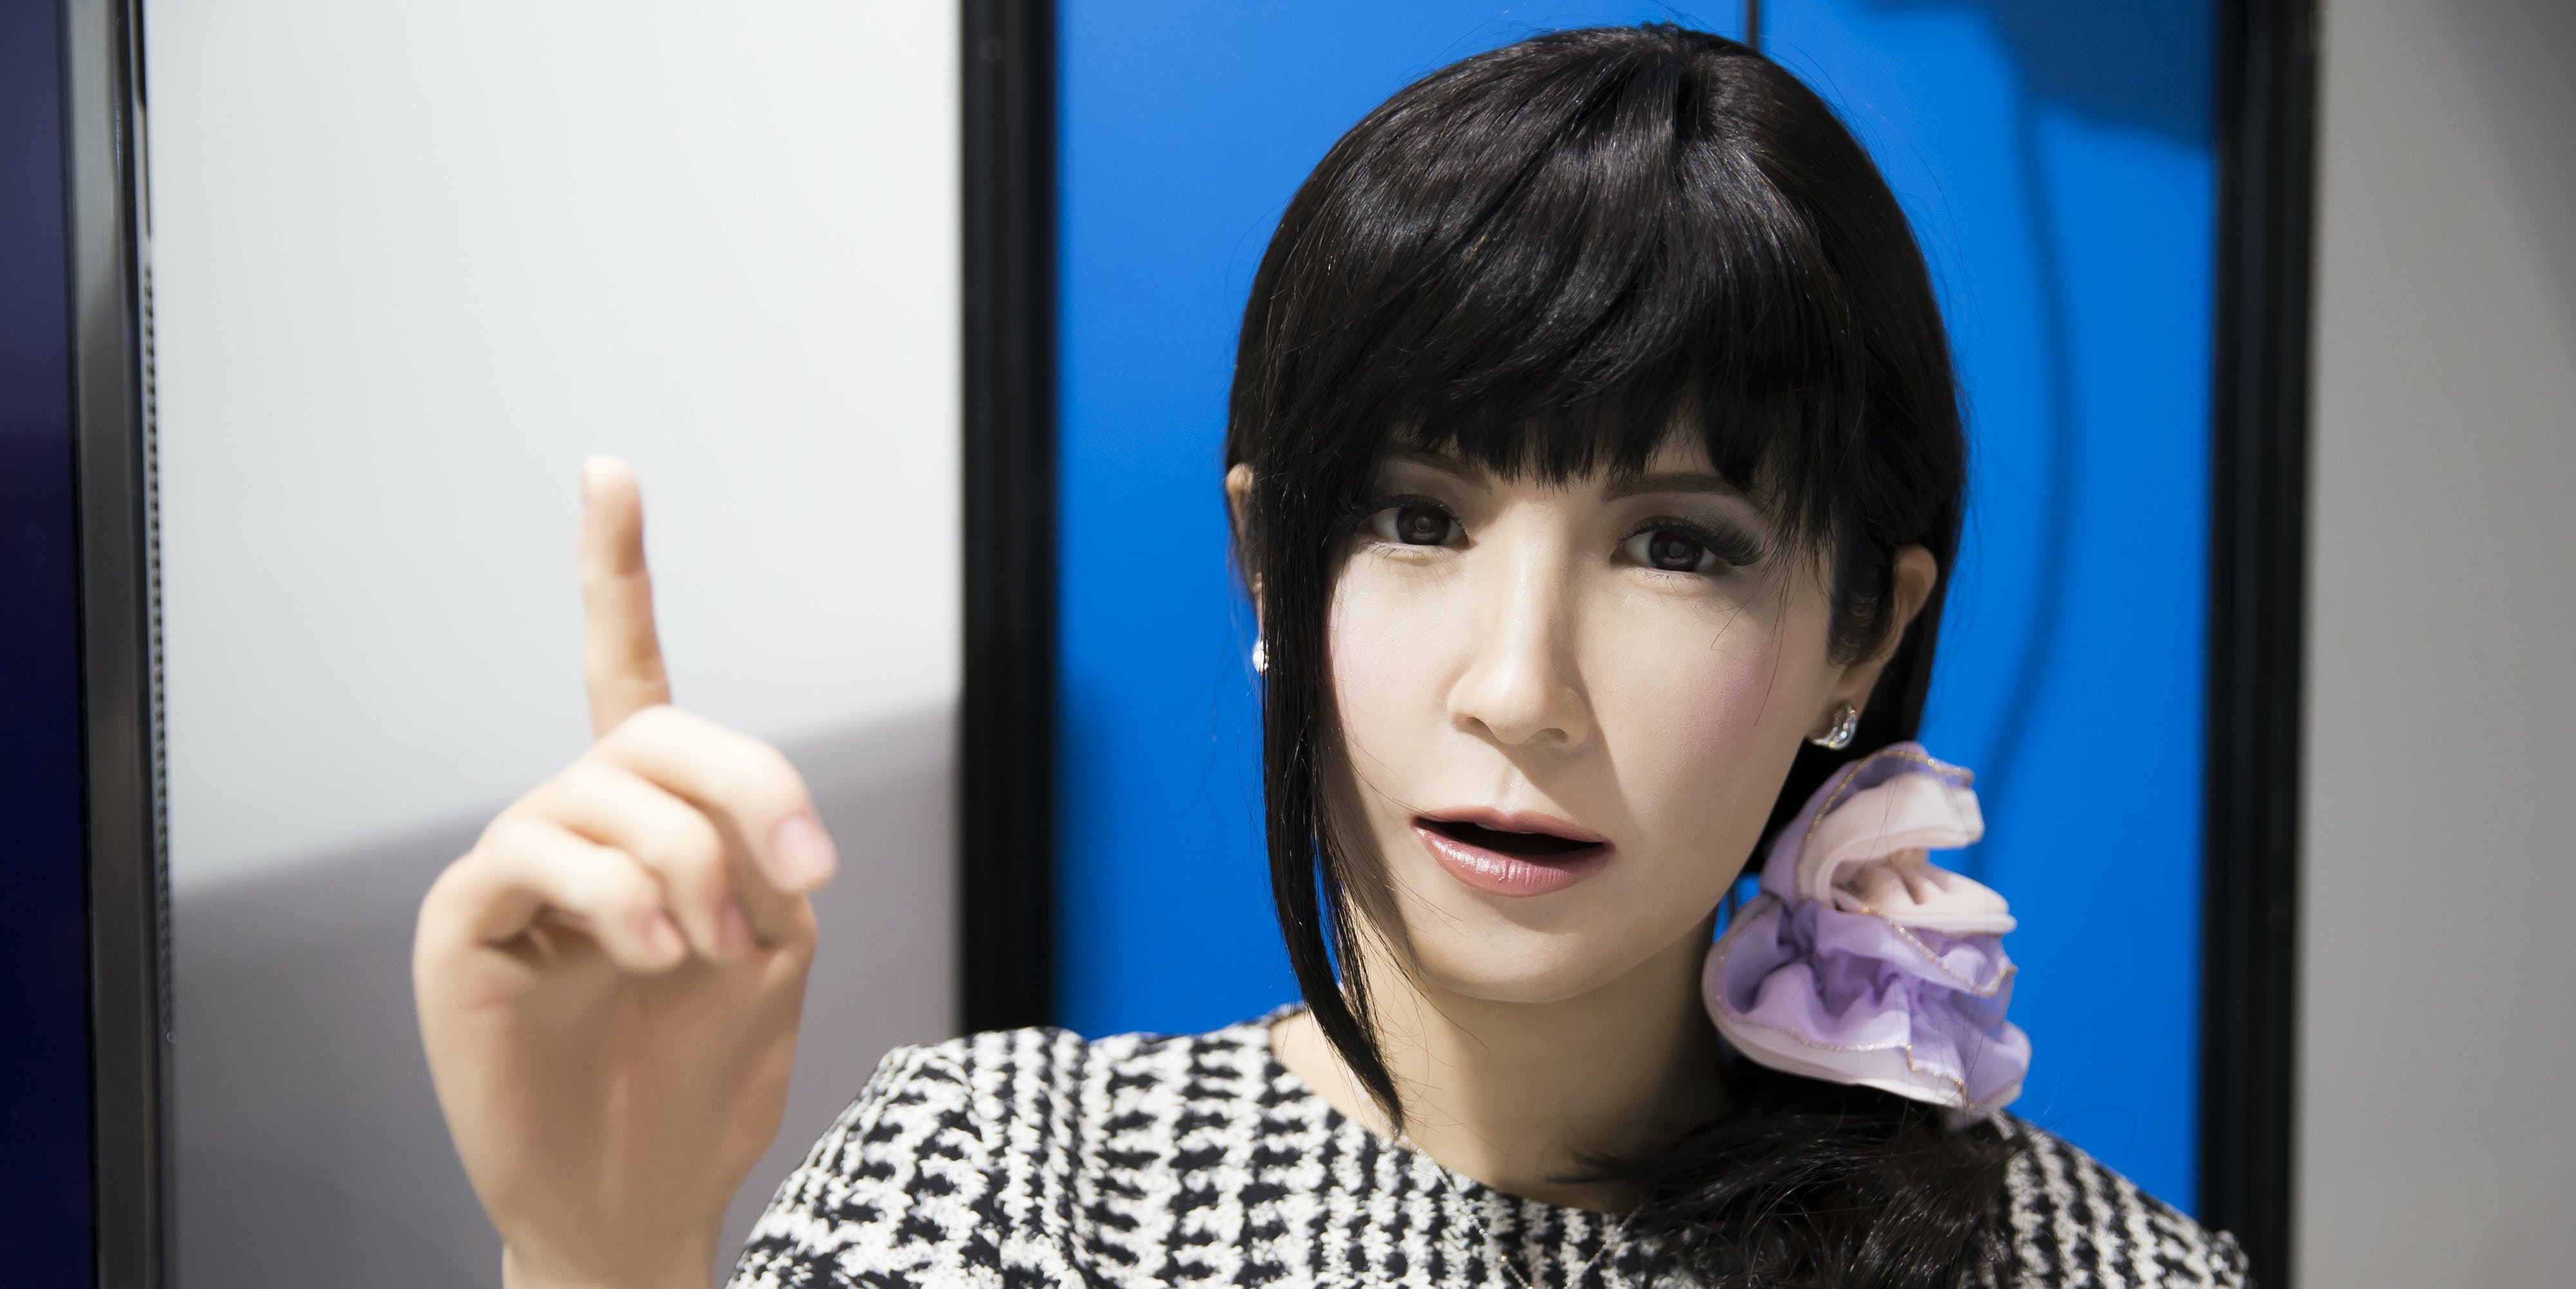 TOKYO, JAPAN - JANUARY 18:  Humanoid robot 'Mirai Madoka' is demonstrated at the Robodex (Robot Development & Application Expo) trade show on January 18, 2017 in Tokyo, Japan. Approximately 160 exhibitors participated in the trade show which covers development technology of robots through to the application of robots.    (Photo by Tomohiro Ohsumi/Getty Images)